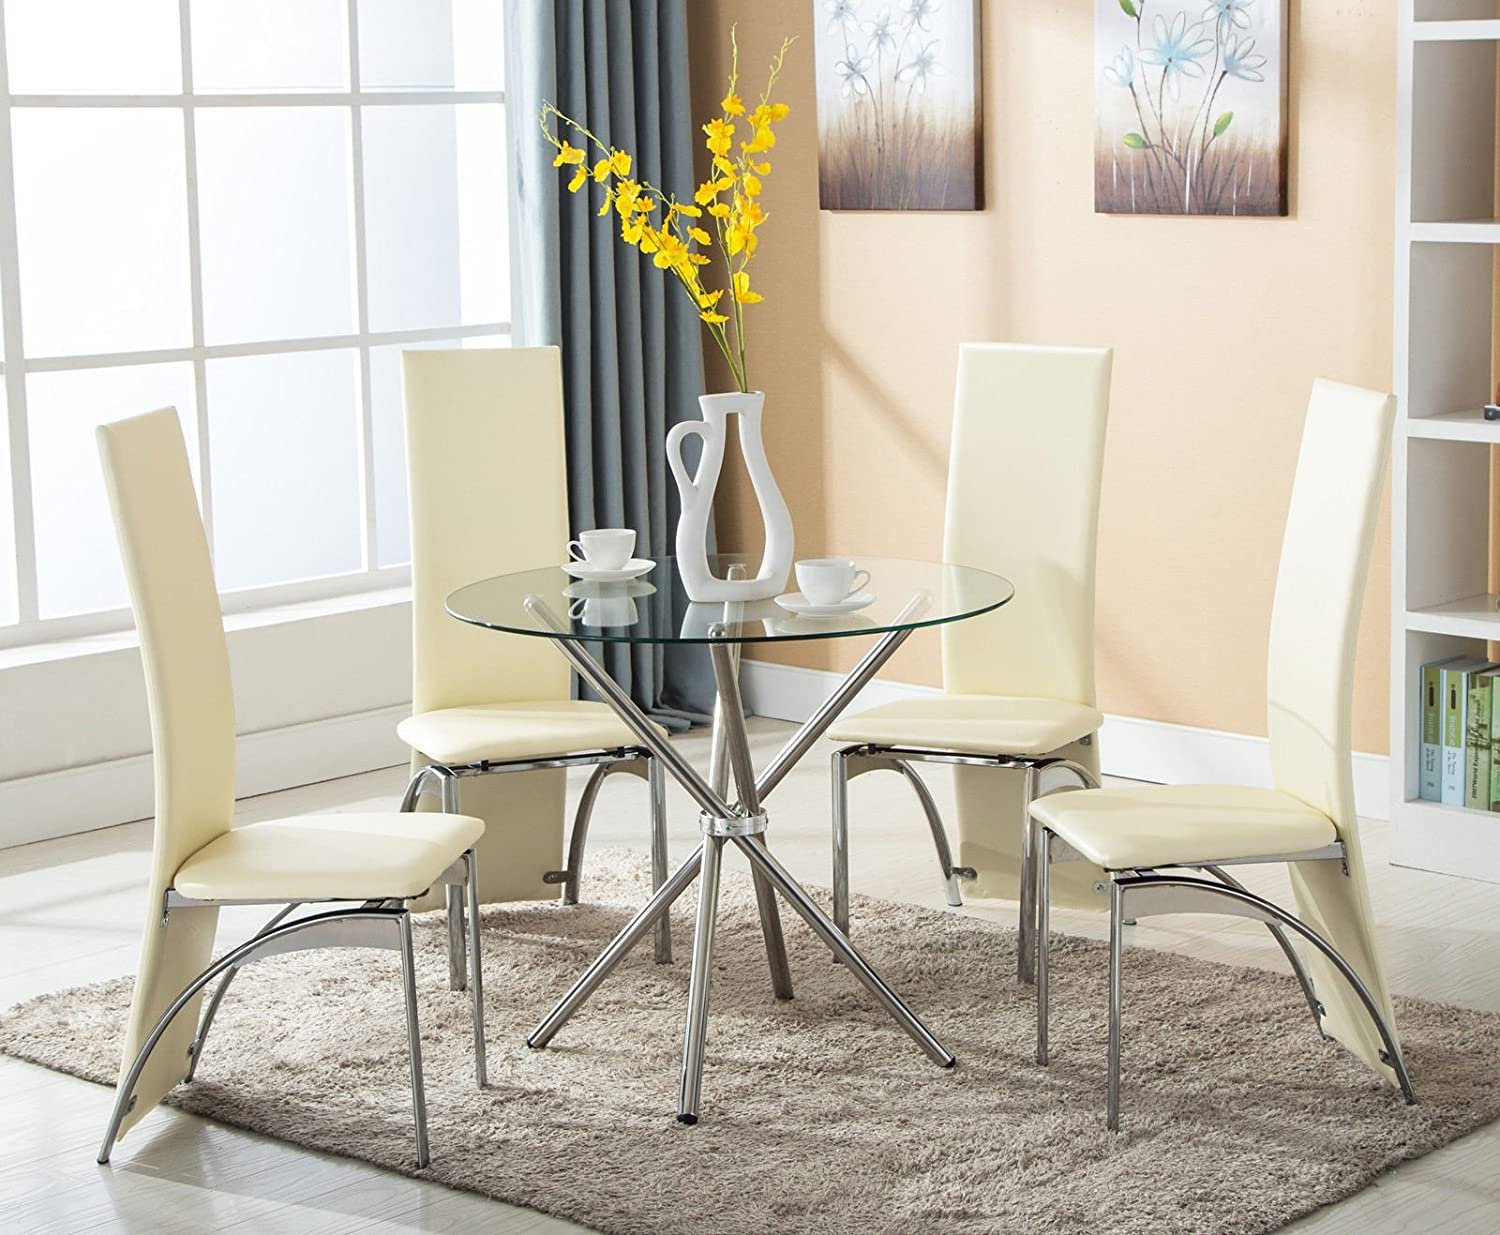 Amazon.com - Eight24hours 5 Piece Dining Table Set w/4 Chairs Glass ...